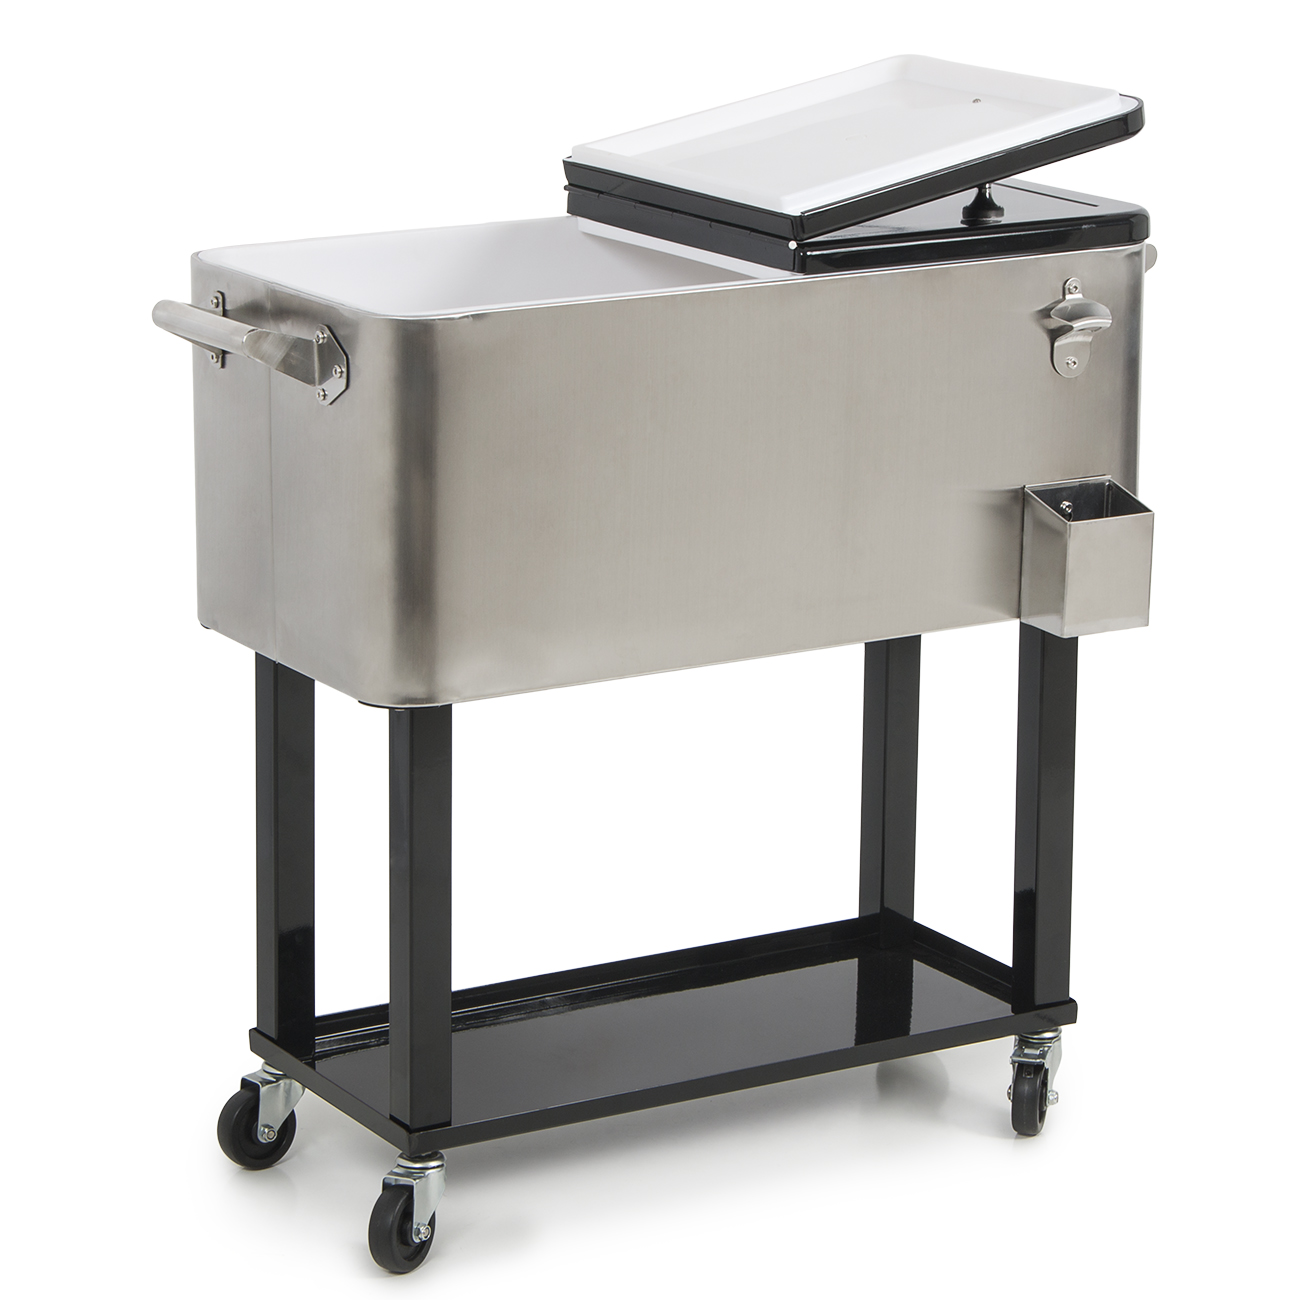 Belleze 80-quart Portable Rolling Ice Chest Cooler Cart Patio Party Drink Ice, Stainless Steel